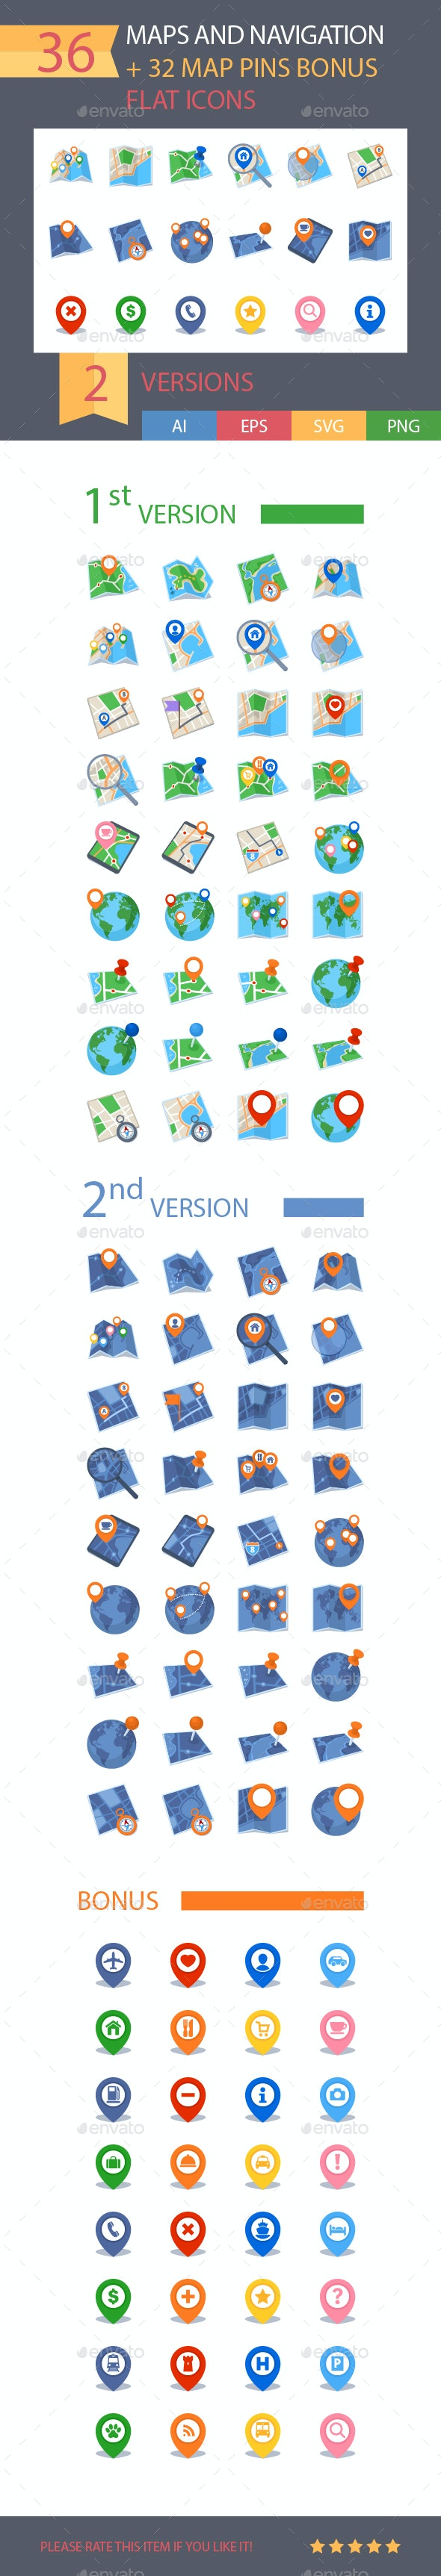 Maps & Navigation Icons - Flat Series - Miscellaneous Icons